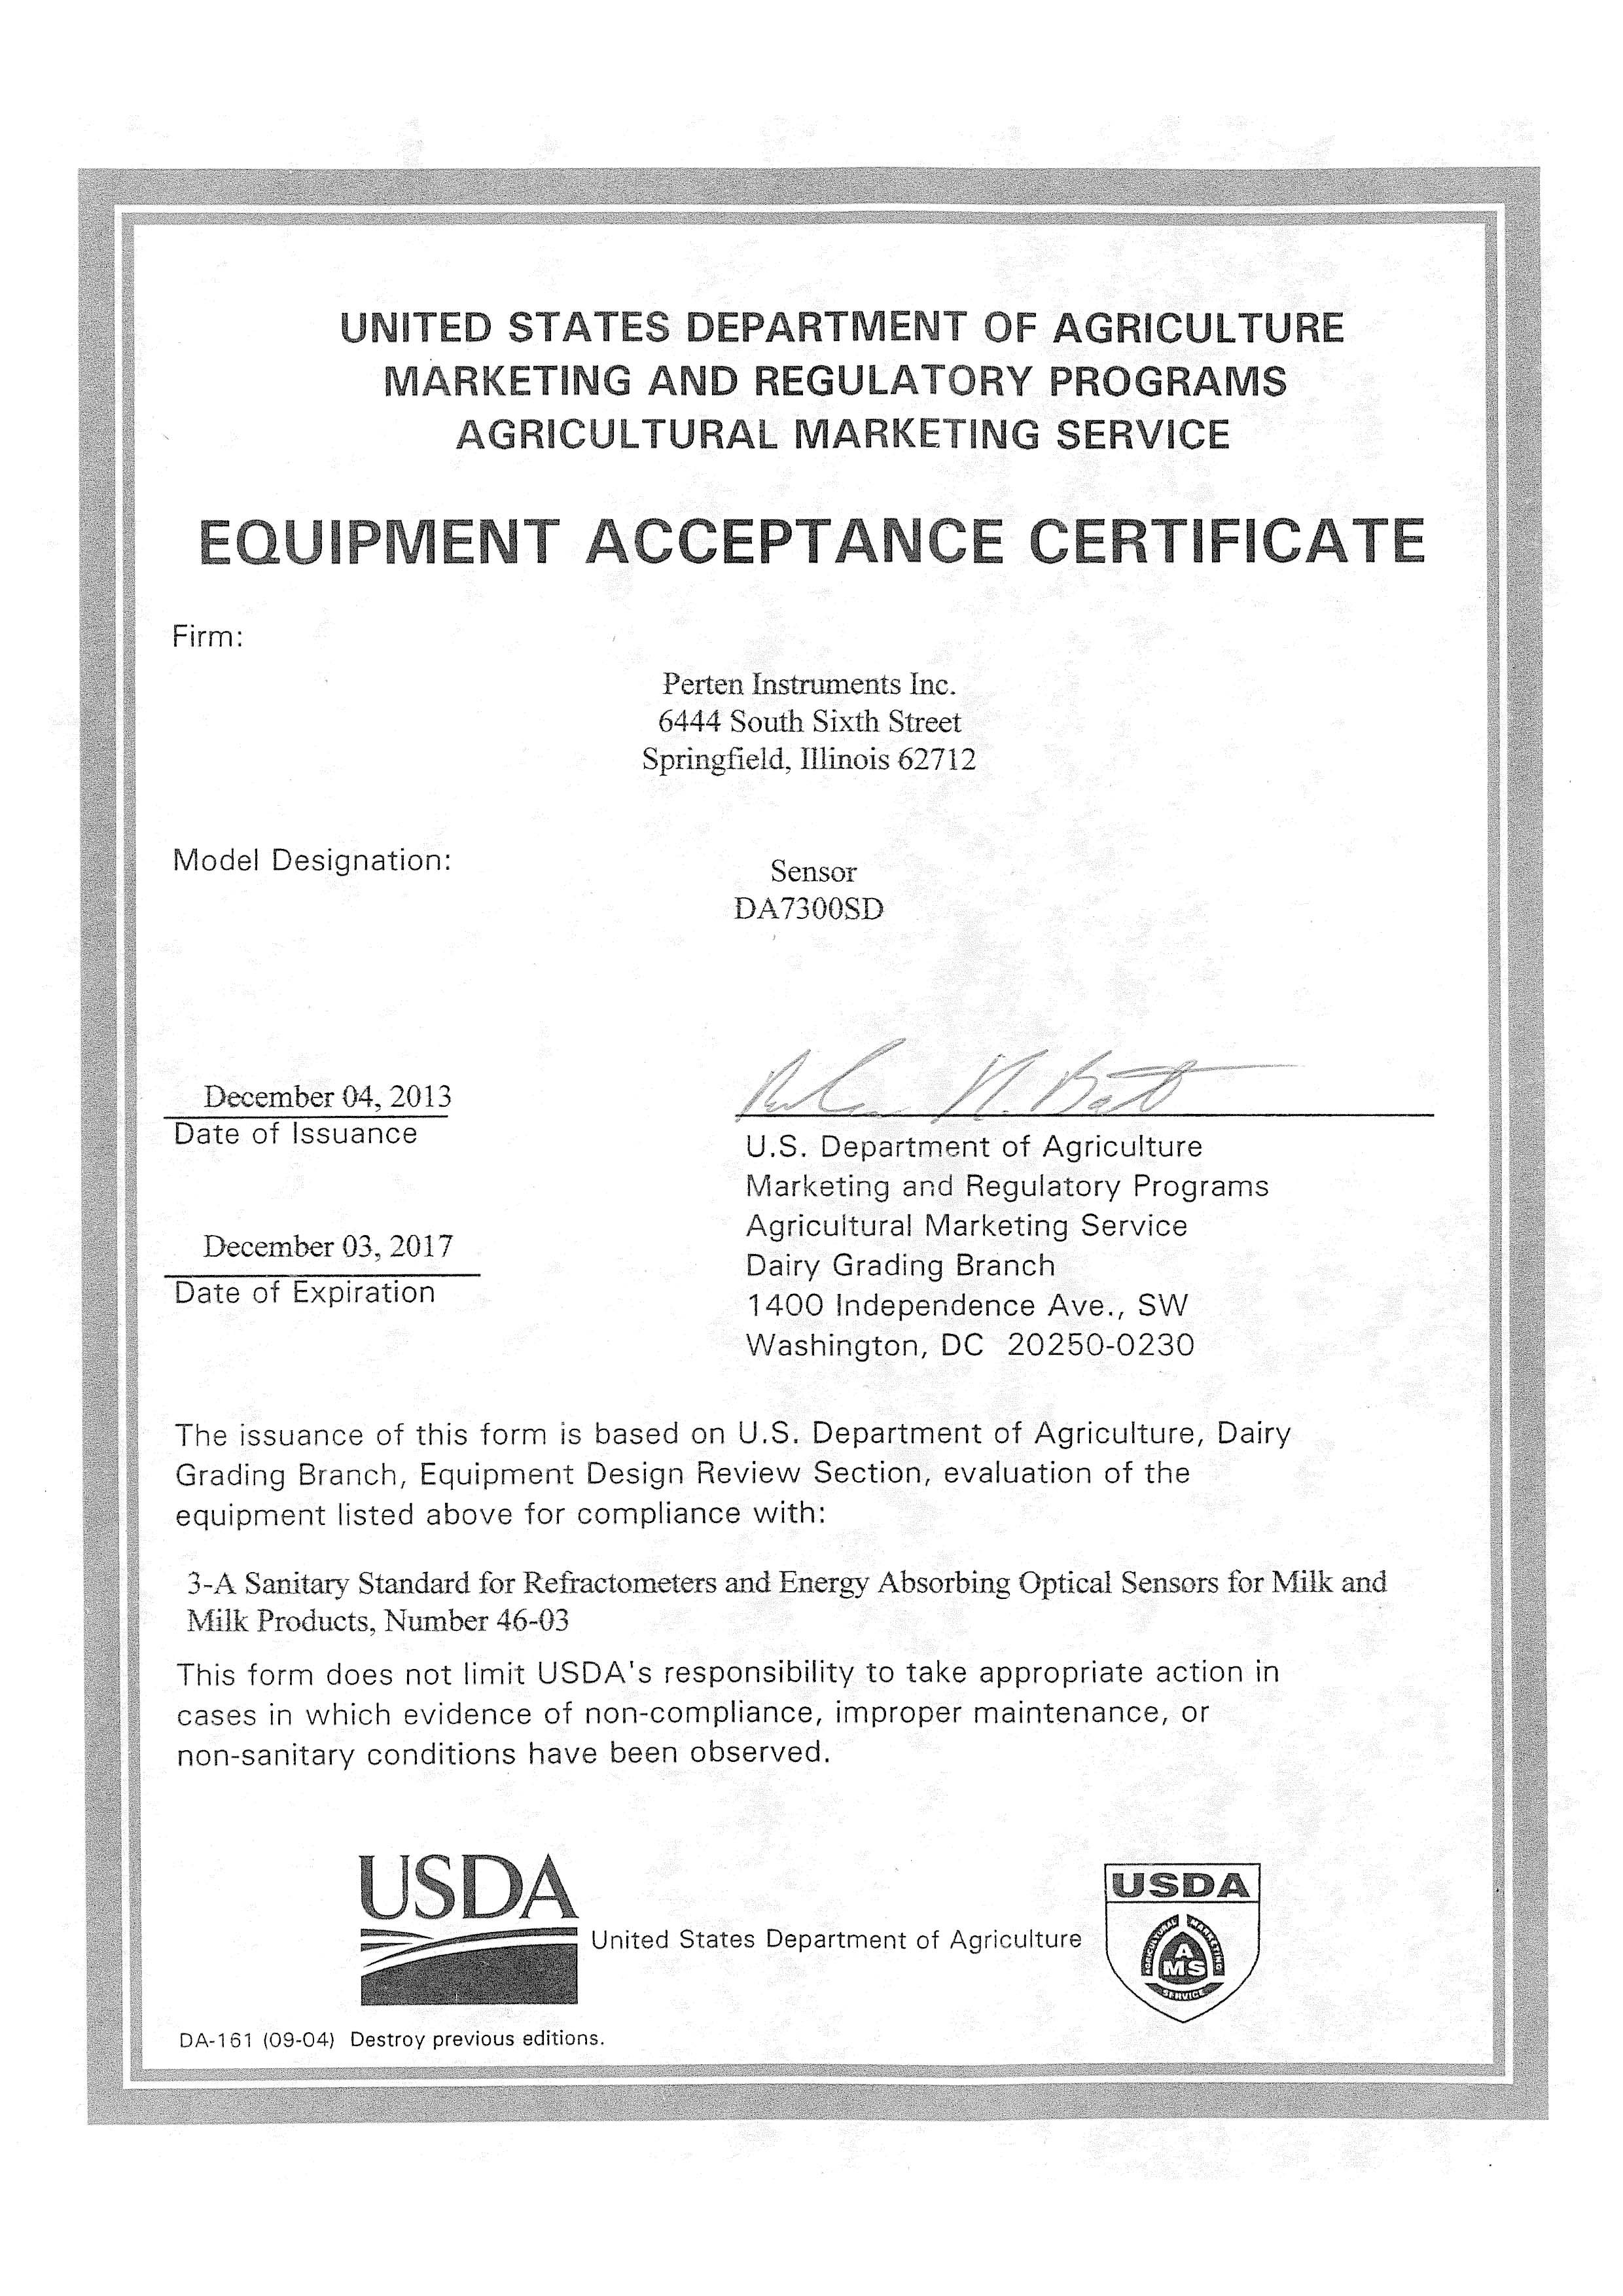 perten instruments letter of acceptance atex certificate yelopaper Choice Image